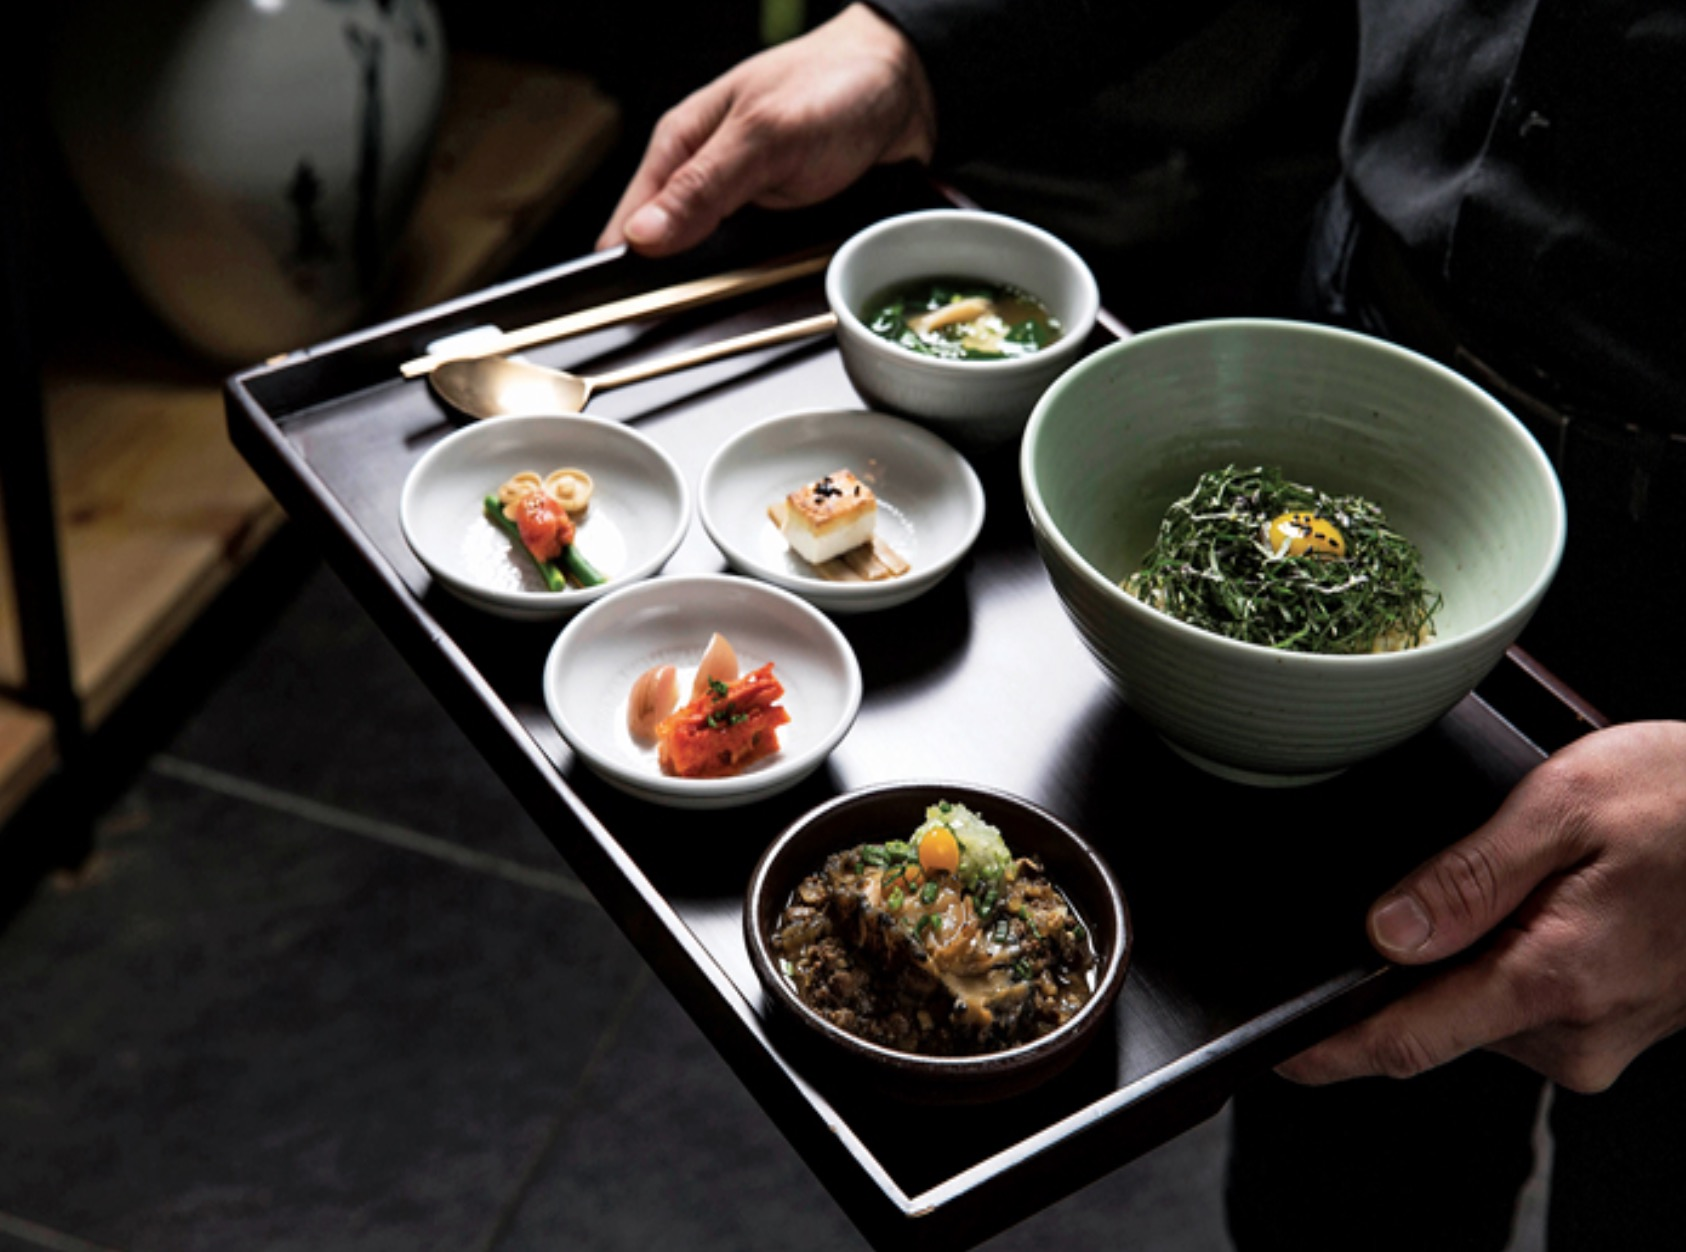 A tray of food at Mingles, Seoul - recommended by Where Chefs Eat